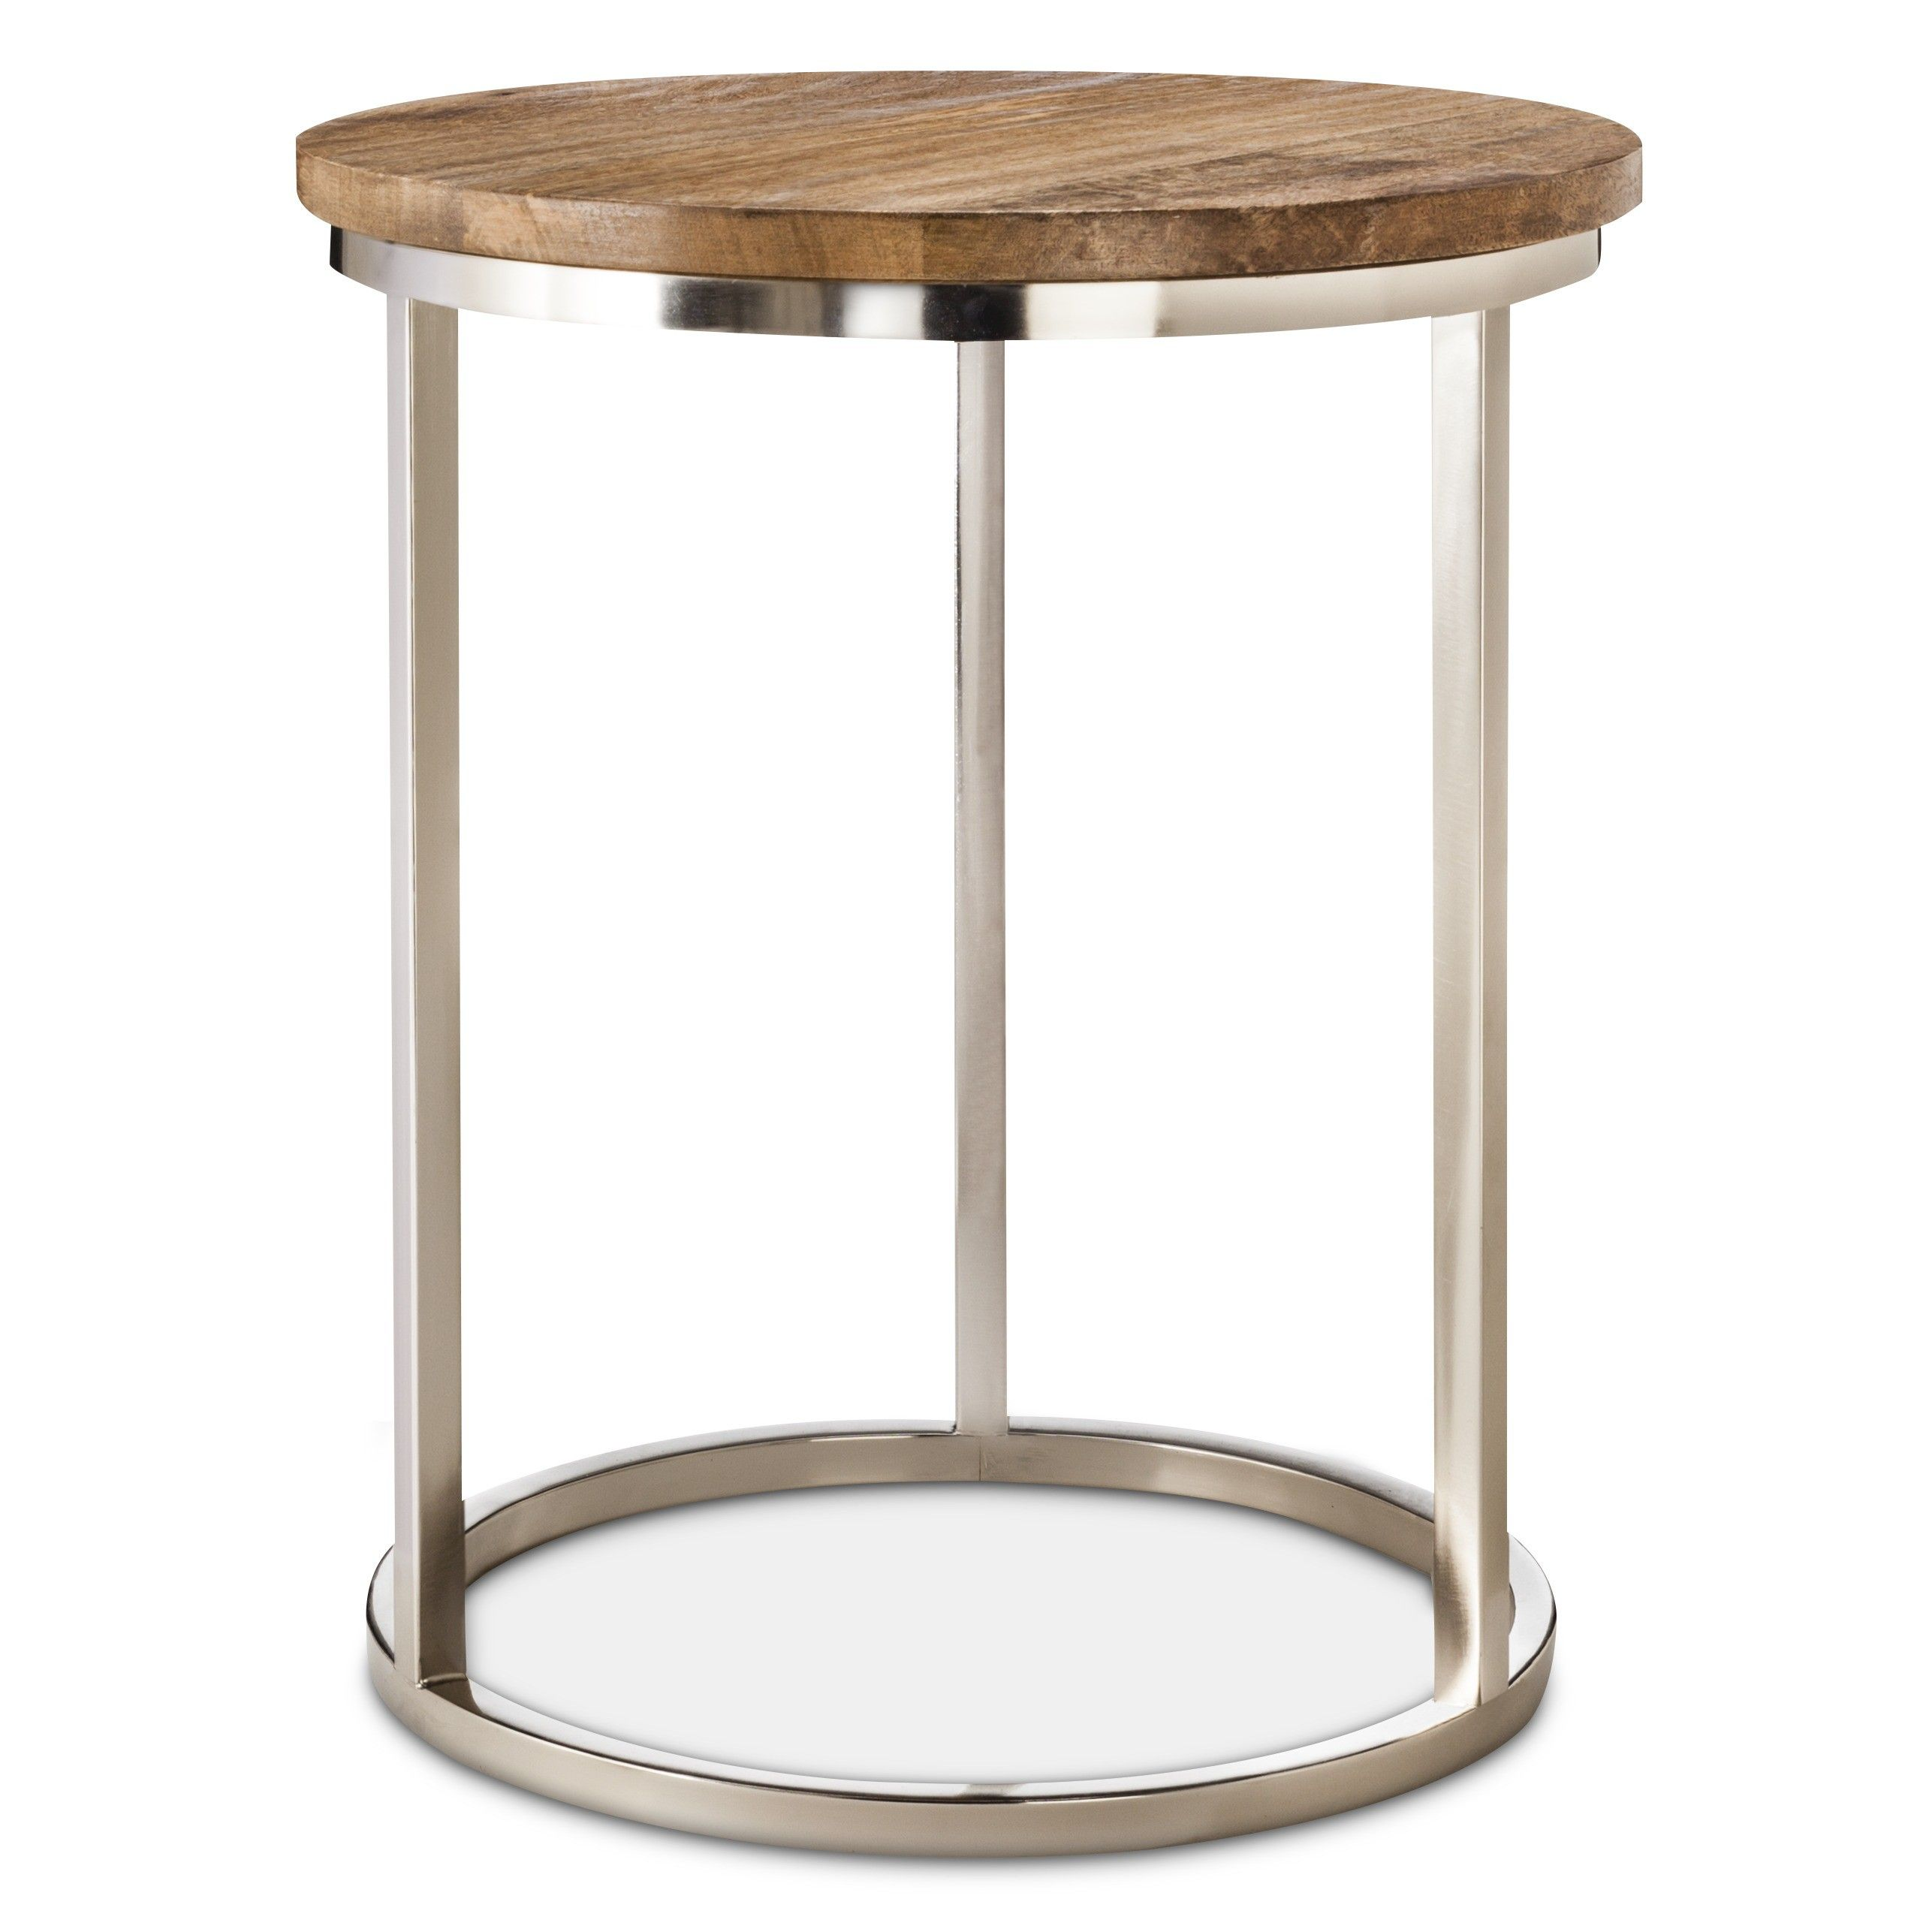 side table for glider threshold metal accent with wood top target gold cool lamps modern plastic garden storage boxes outdoor bbq island baroque chair shabby chic living room